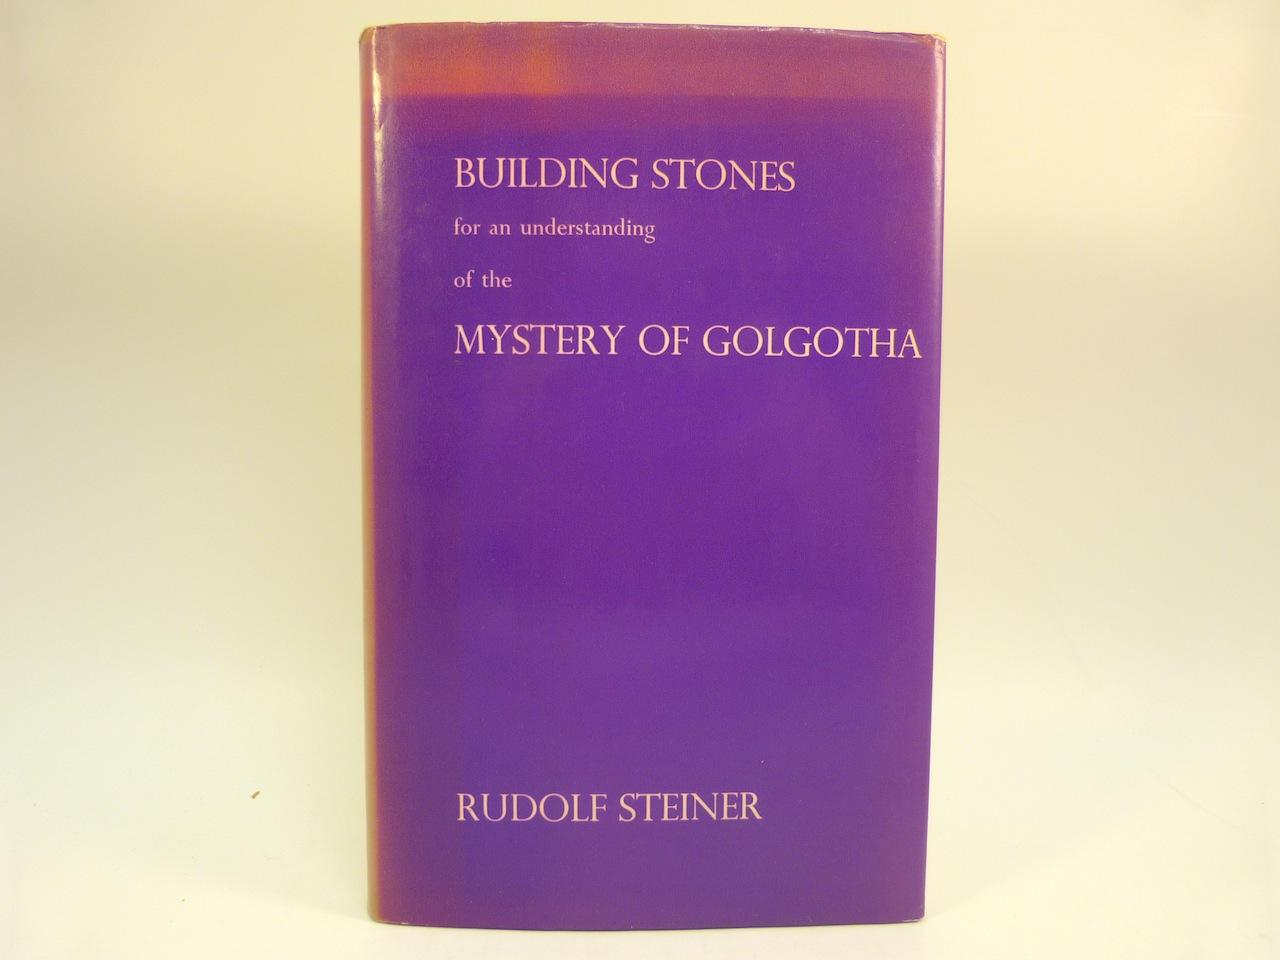 BUILDING STONES FOR AN UNDERSTANDING OF THE MYSTERY OF GOLGOTHA : TEN LECTURES GIVEN IN BERLIN FROM 27TH MARCH TO 8TH MAY, 1917 - Steiner, Rudolf (Translated by A.H. Parker)